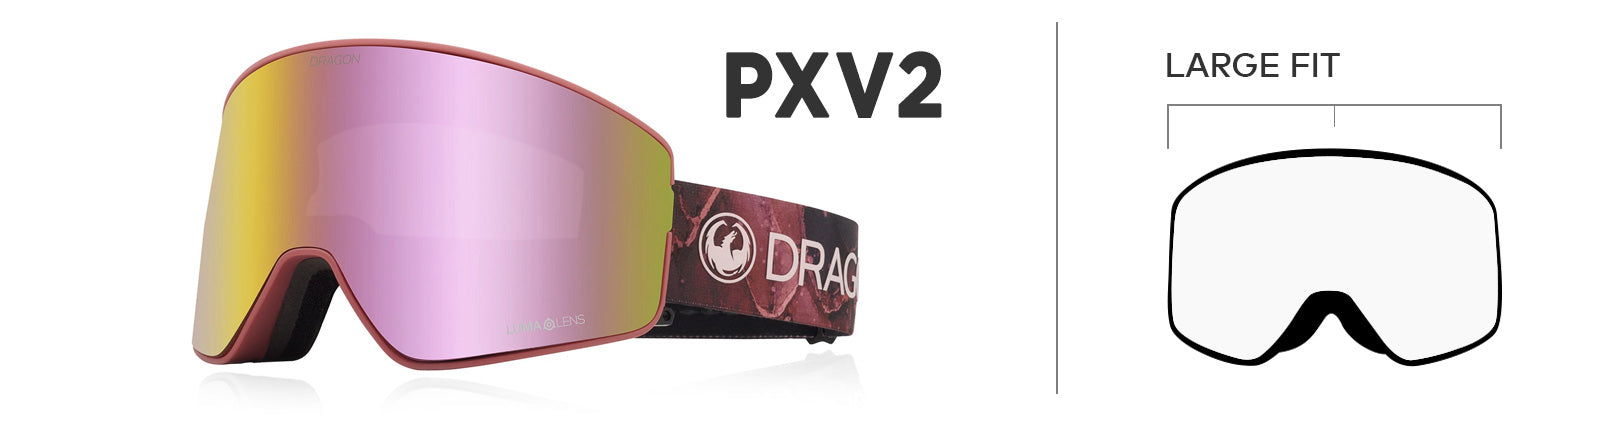 Dragon PXV2 Goggles